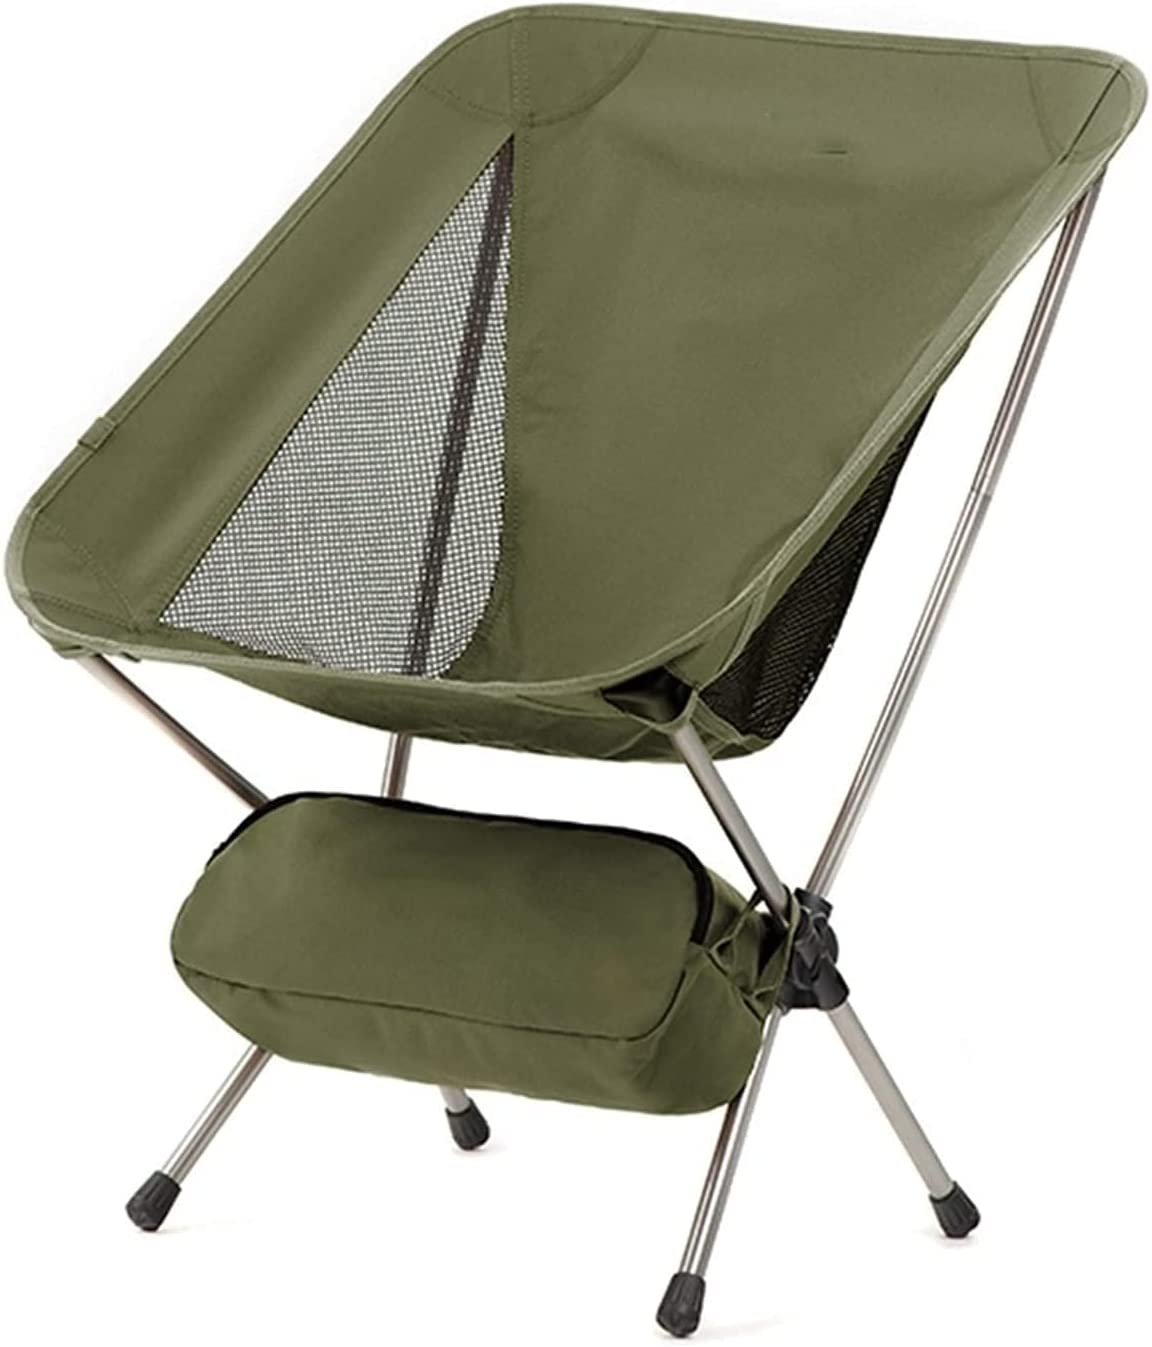 Jin-Siu Lawn Jacksonville Mall Chairs Over item handling ☆ Portable Breathable Campin Foldable